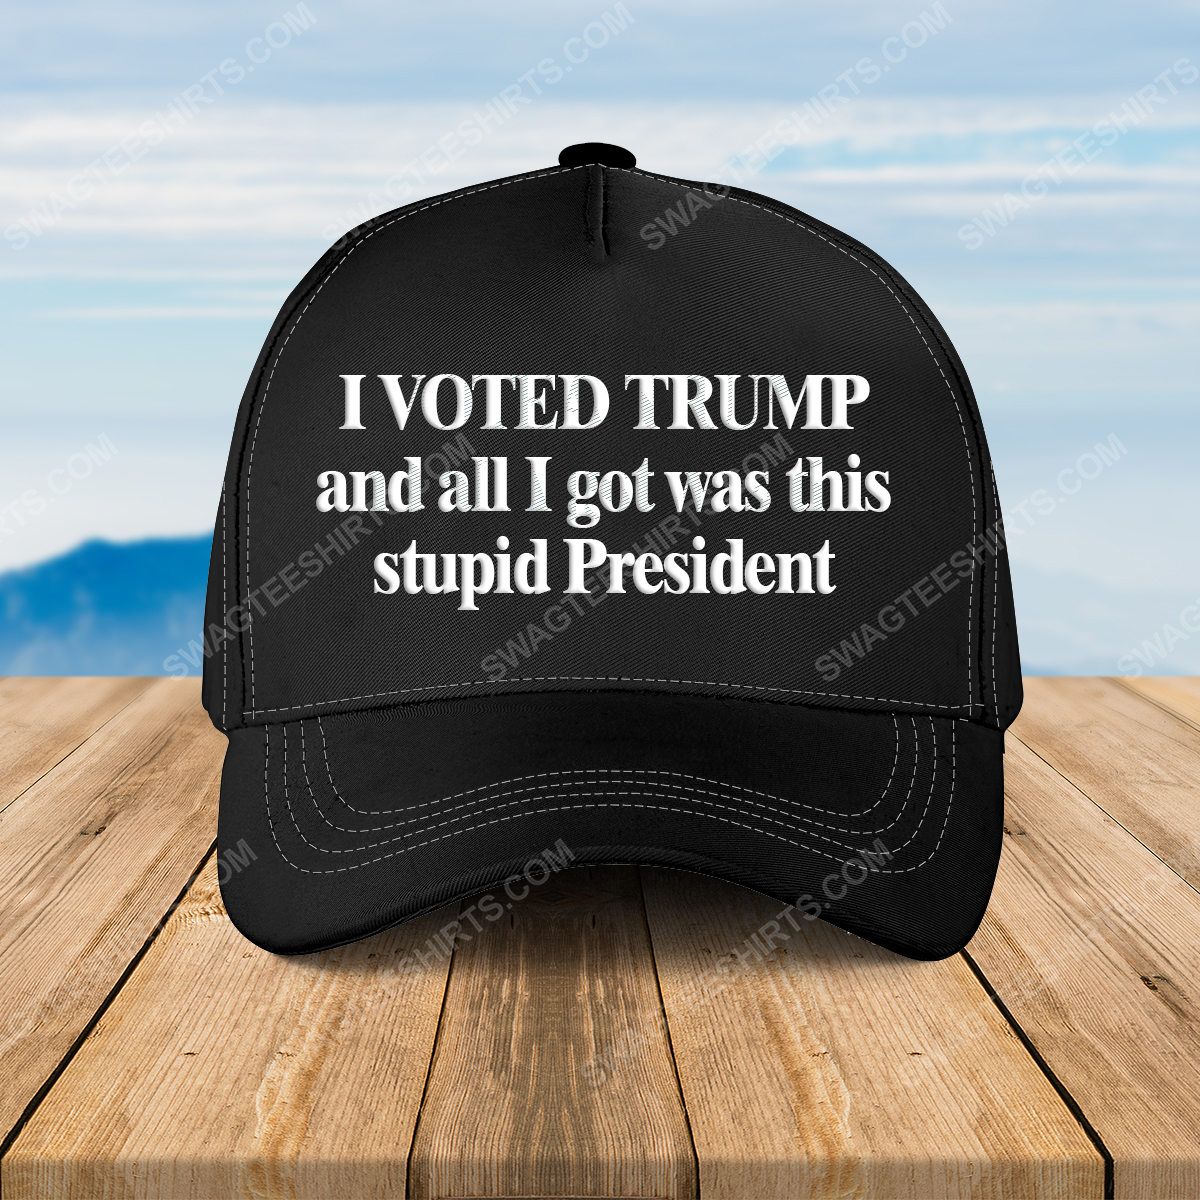 I voted trump and all i got was this stupid president full print classic hat